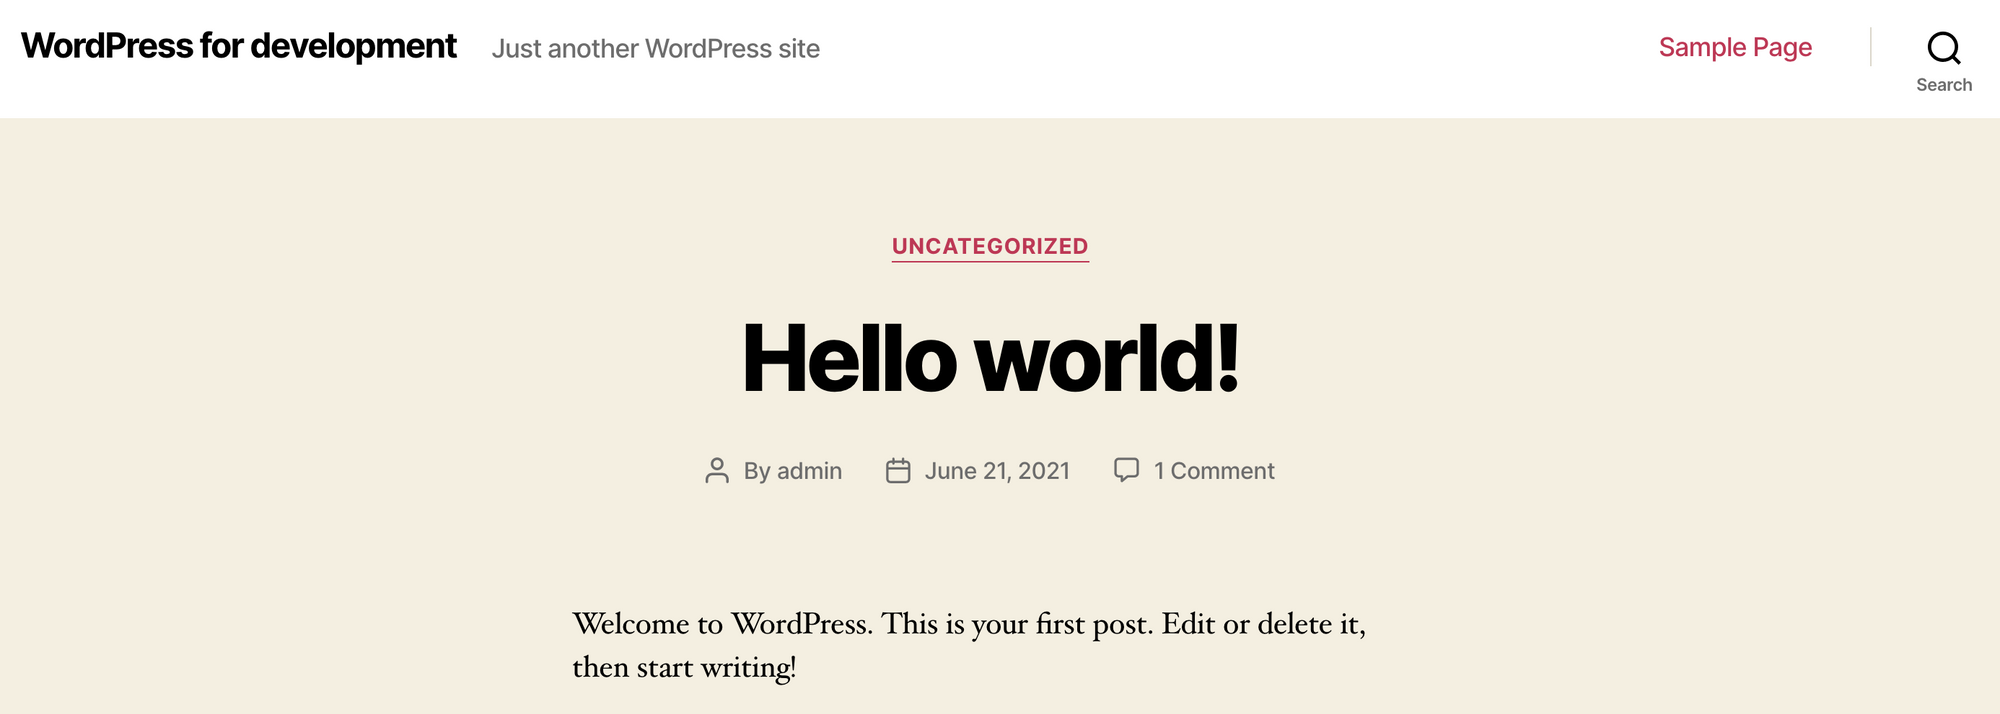 The WordPress home page on localhost:80